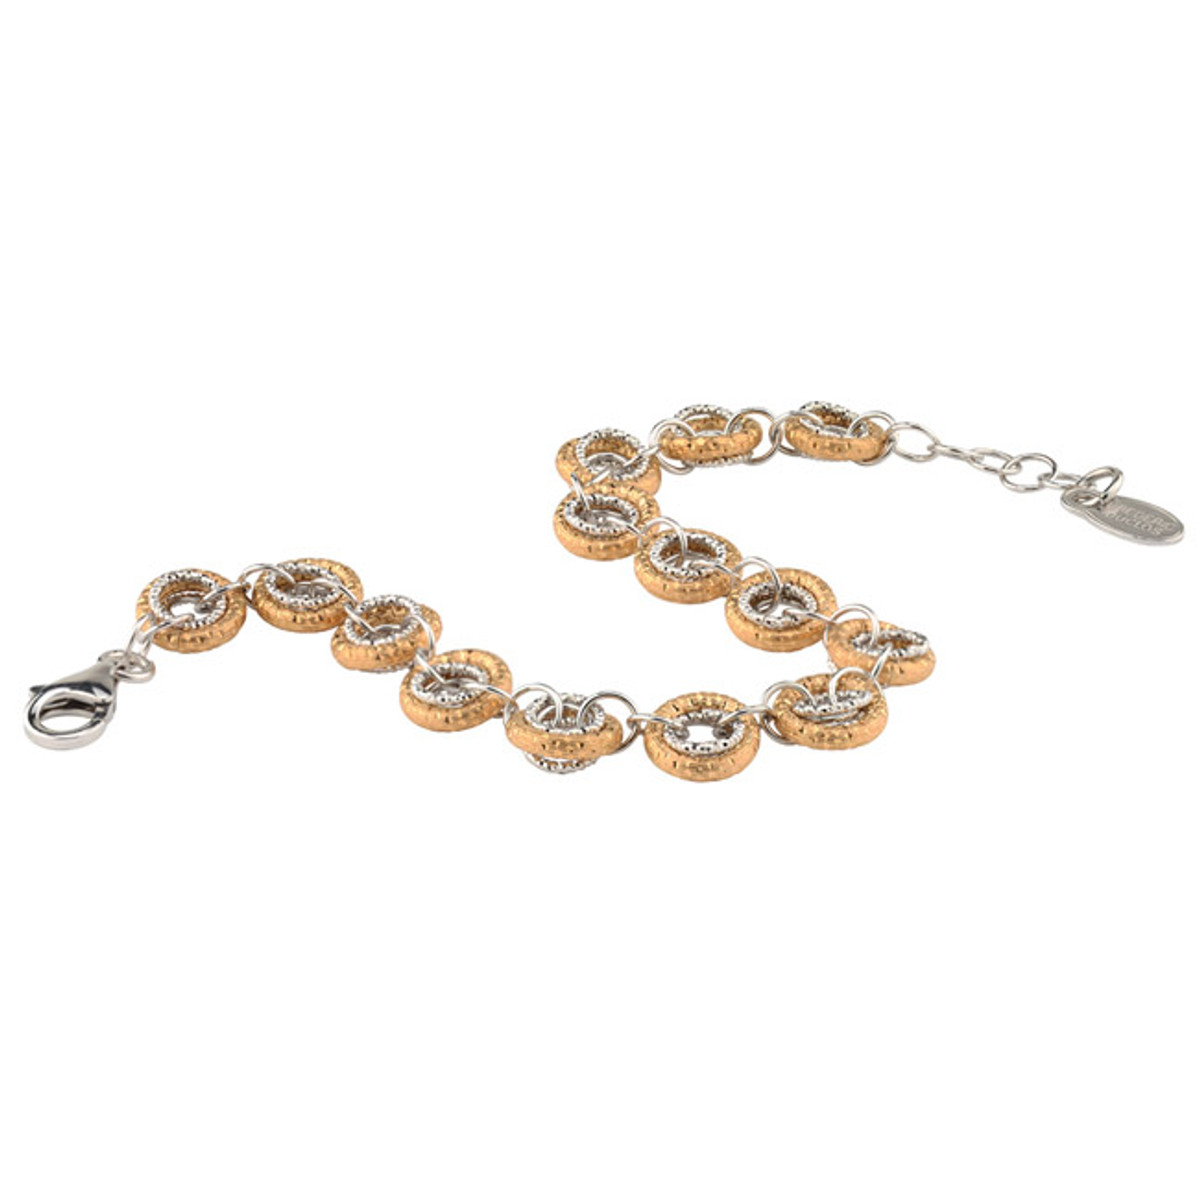 Sterling Silver Gold Overlay Bracelet, Frederic Duclos